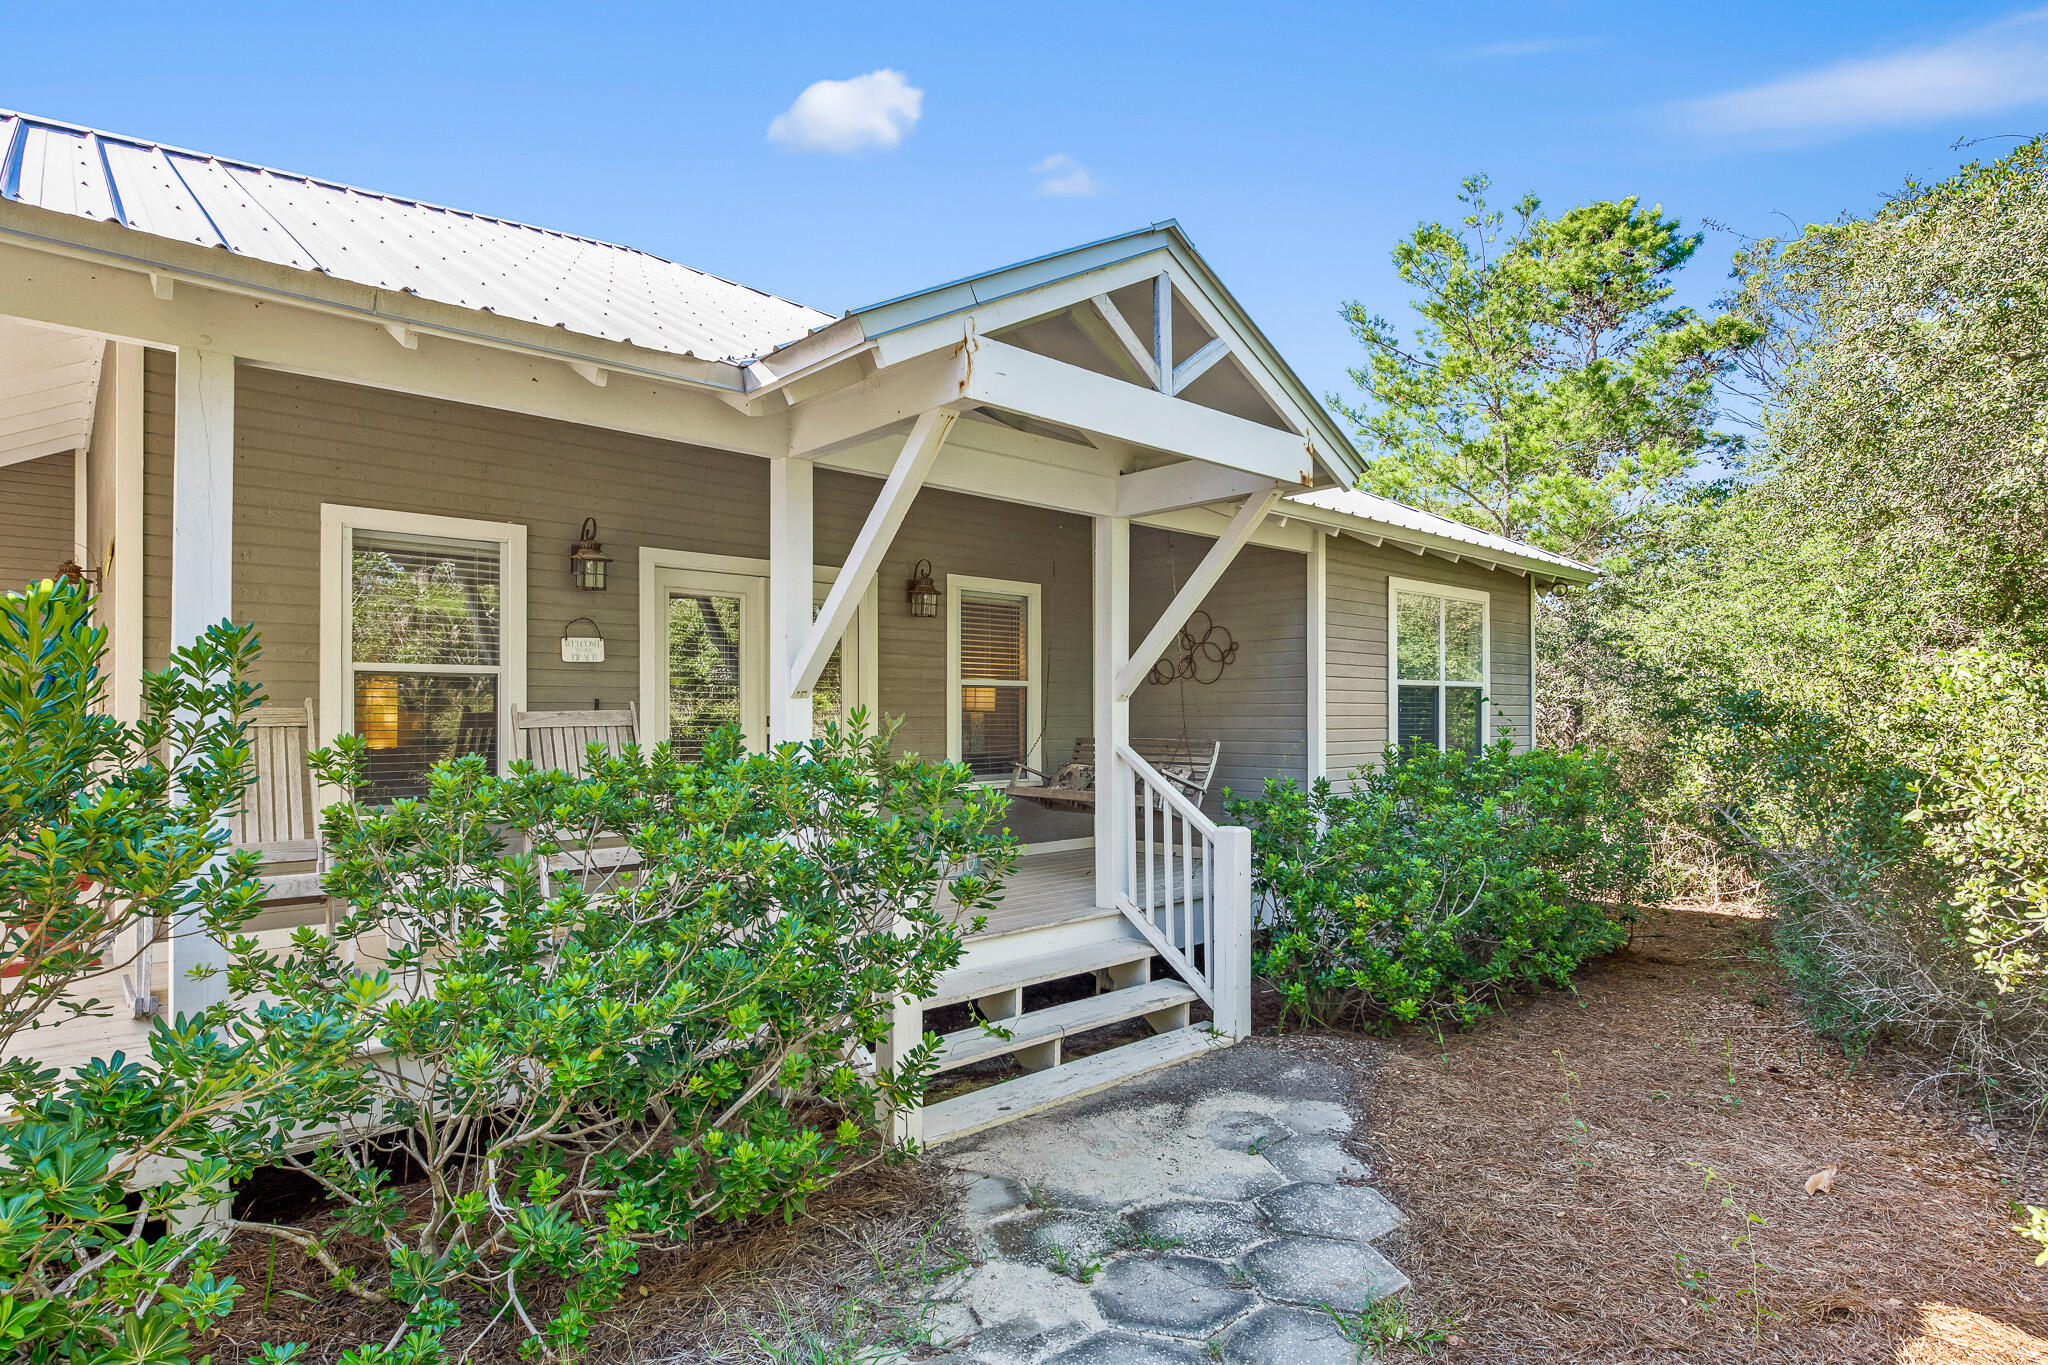 Rarely do opportunities like this come up! The perfect beach cottage in Blue Mountain Beach. This home features 3 bedrooms, 2 bathrooms, 4 neighborhood beach access points, and a private pool! The home sits on a massive 75x150 lot south of 30A located just steps away from the beach. Find out why everyone loves living in Blue Mountain Beach!Buyer to verify all information and dimensions. Information is deemed reliable but not guaranteed.